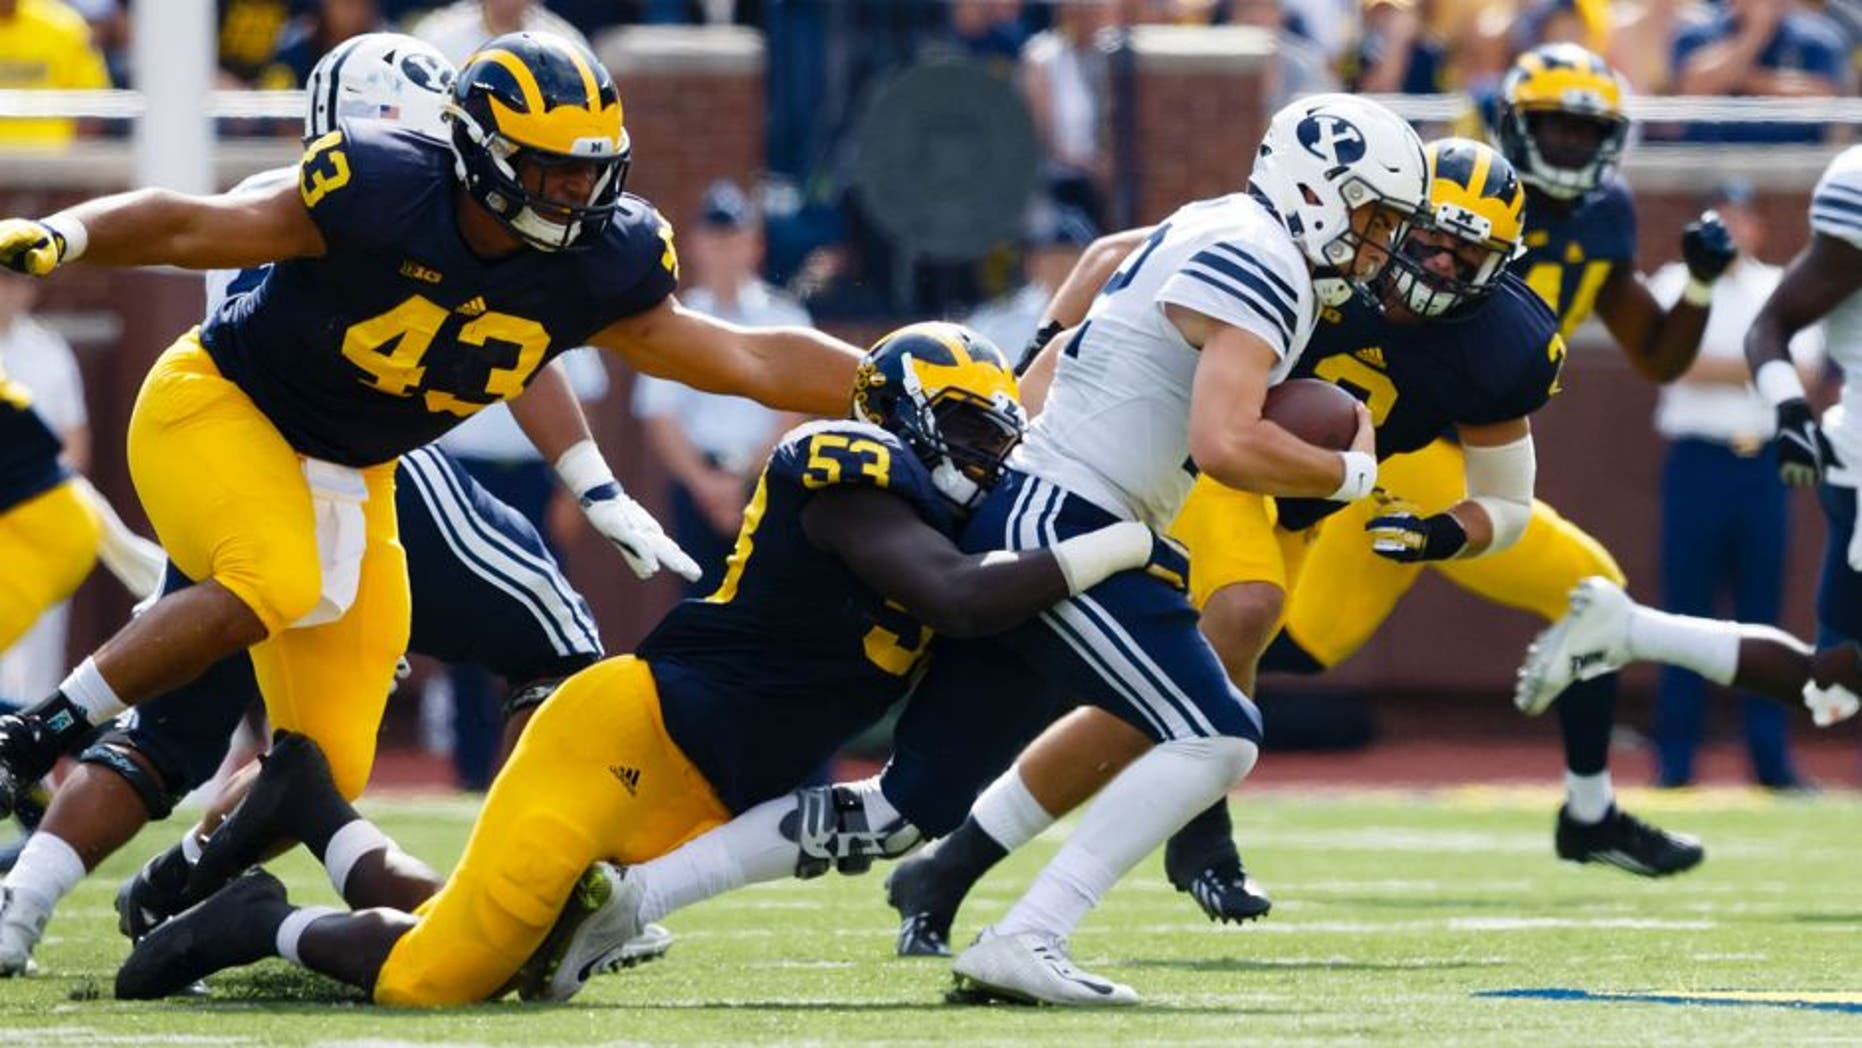 Sep 26, 2015; Ann Arbor, MI, USA; Brigham Young Cougars quarterback Tanner Mangum (12) is tackled by Michigan Wolverines defensive end Mario Ojemudia (53) in the third quarter at Michigan Stadium. Michigan won 31-0. Mandatory Credit: Rick Osentoski-USA TODAY Sports